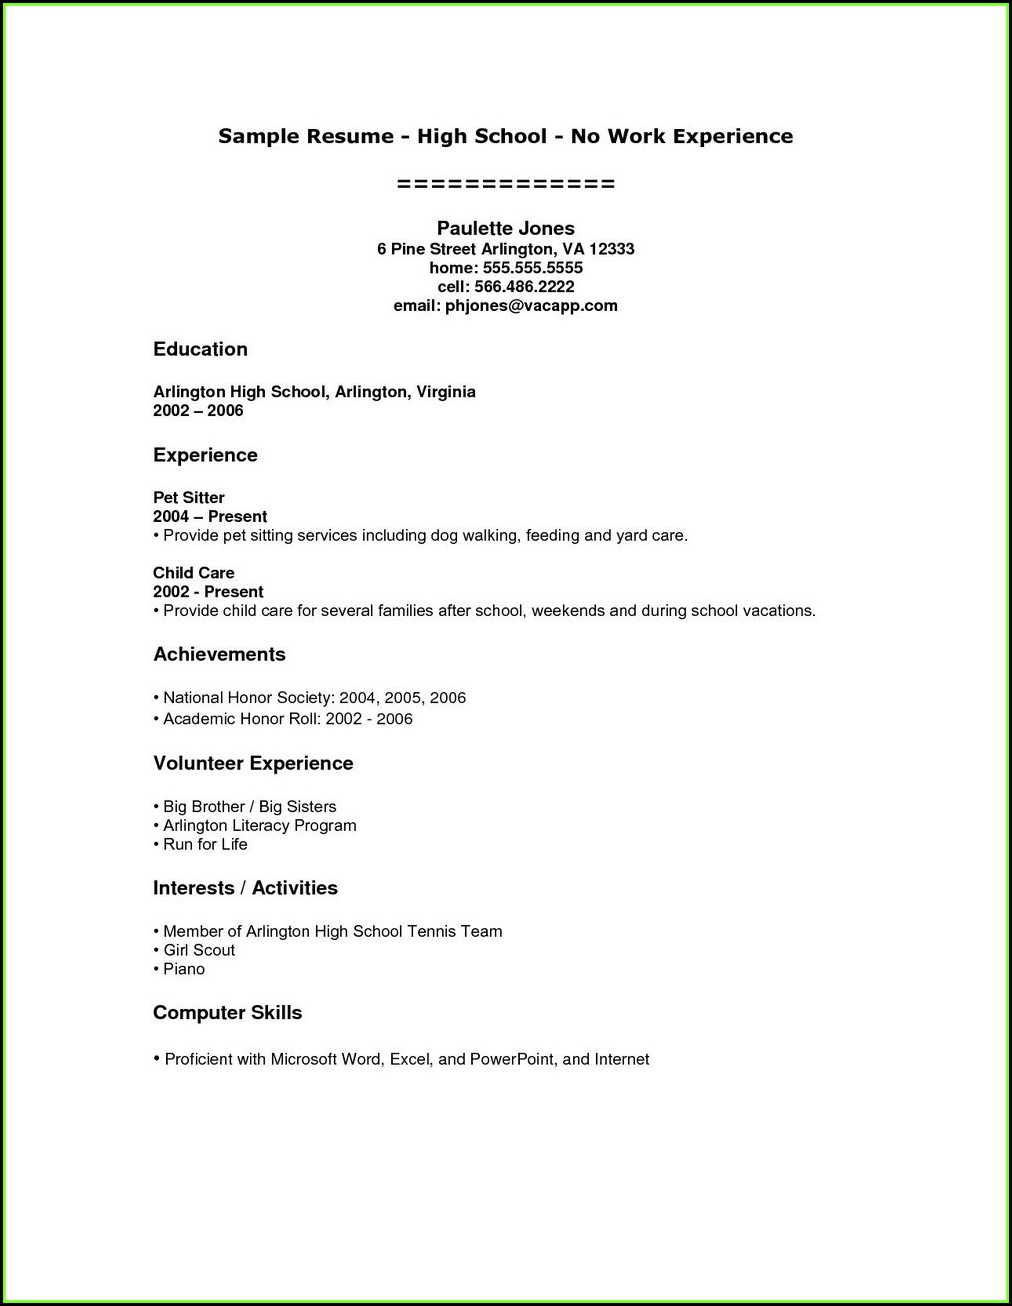 Free Resume Template For High School Student With No Work Experience